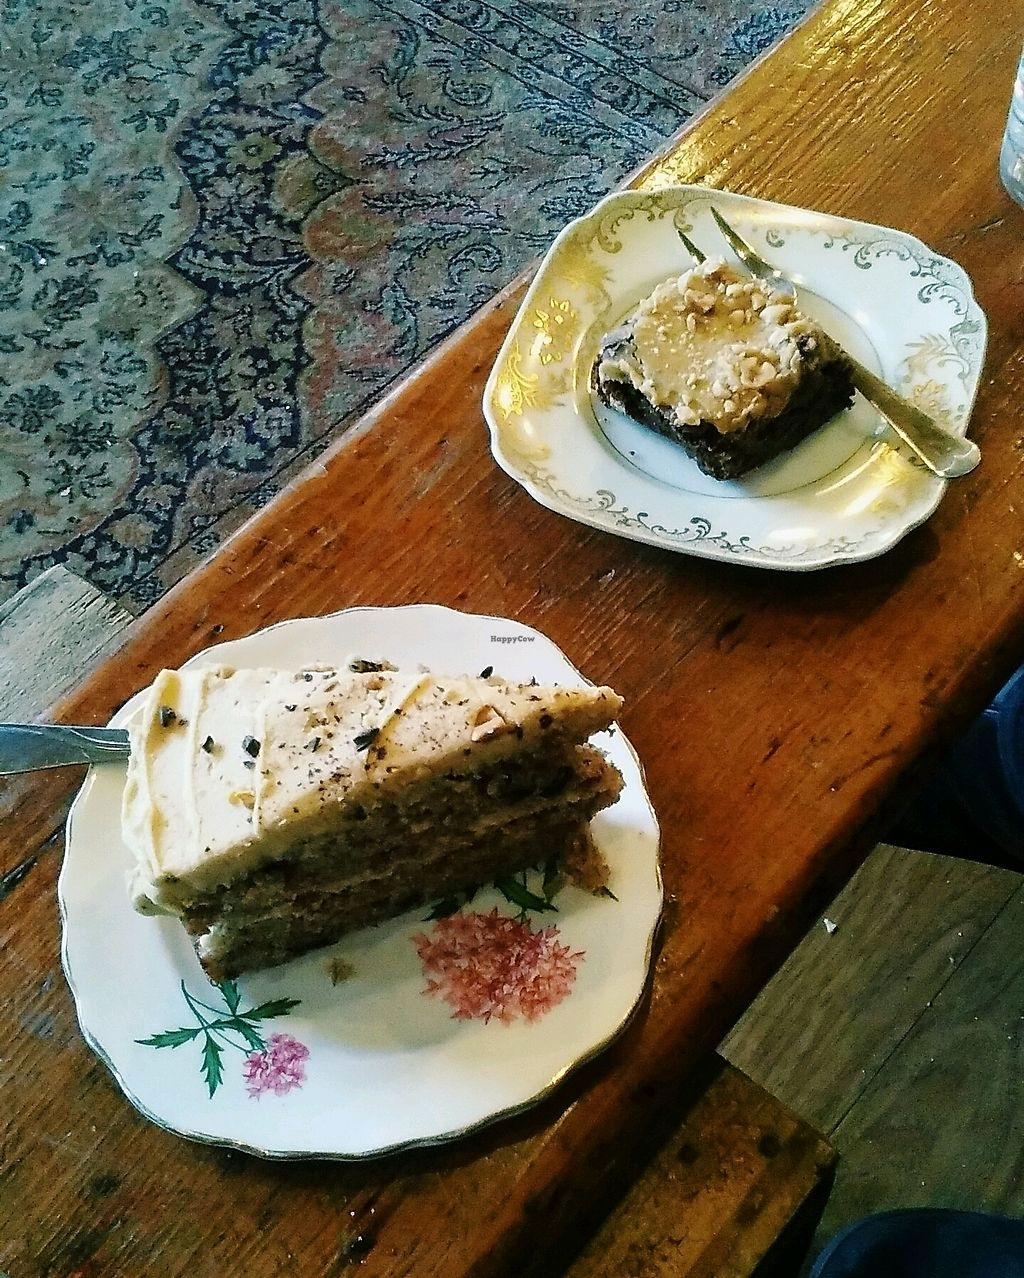 """Photo of The Cran  by <a href=""""/members/profile/unmond"""">unmond</a> <br/>PB Banana Cake & Salted Caramel Brownie <br/> March 17, 2018  - <a href='/contact/abuse/image/86879/371959'>Report</a>"""